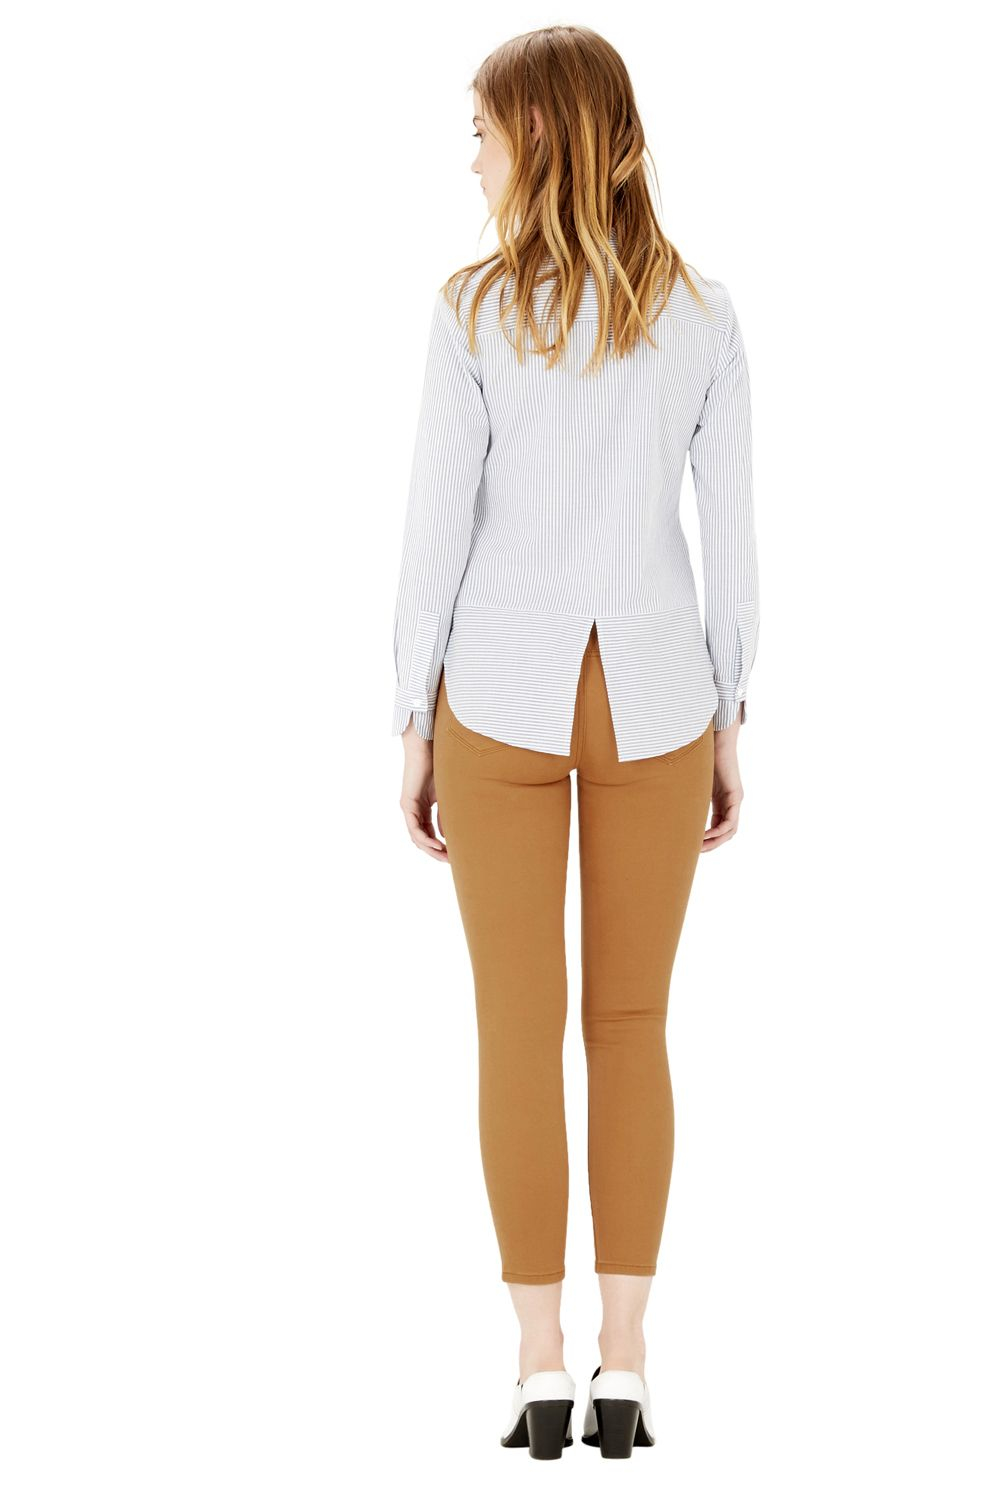 Lyst - Warehouse Cropped Signature Skinny Jeans in Brown